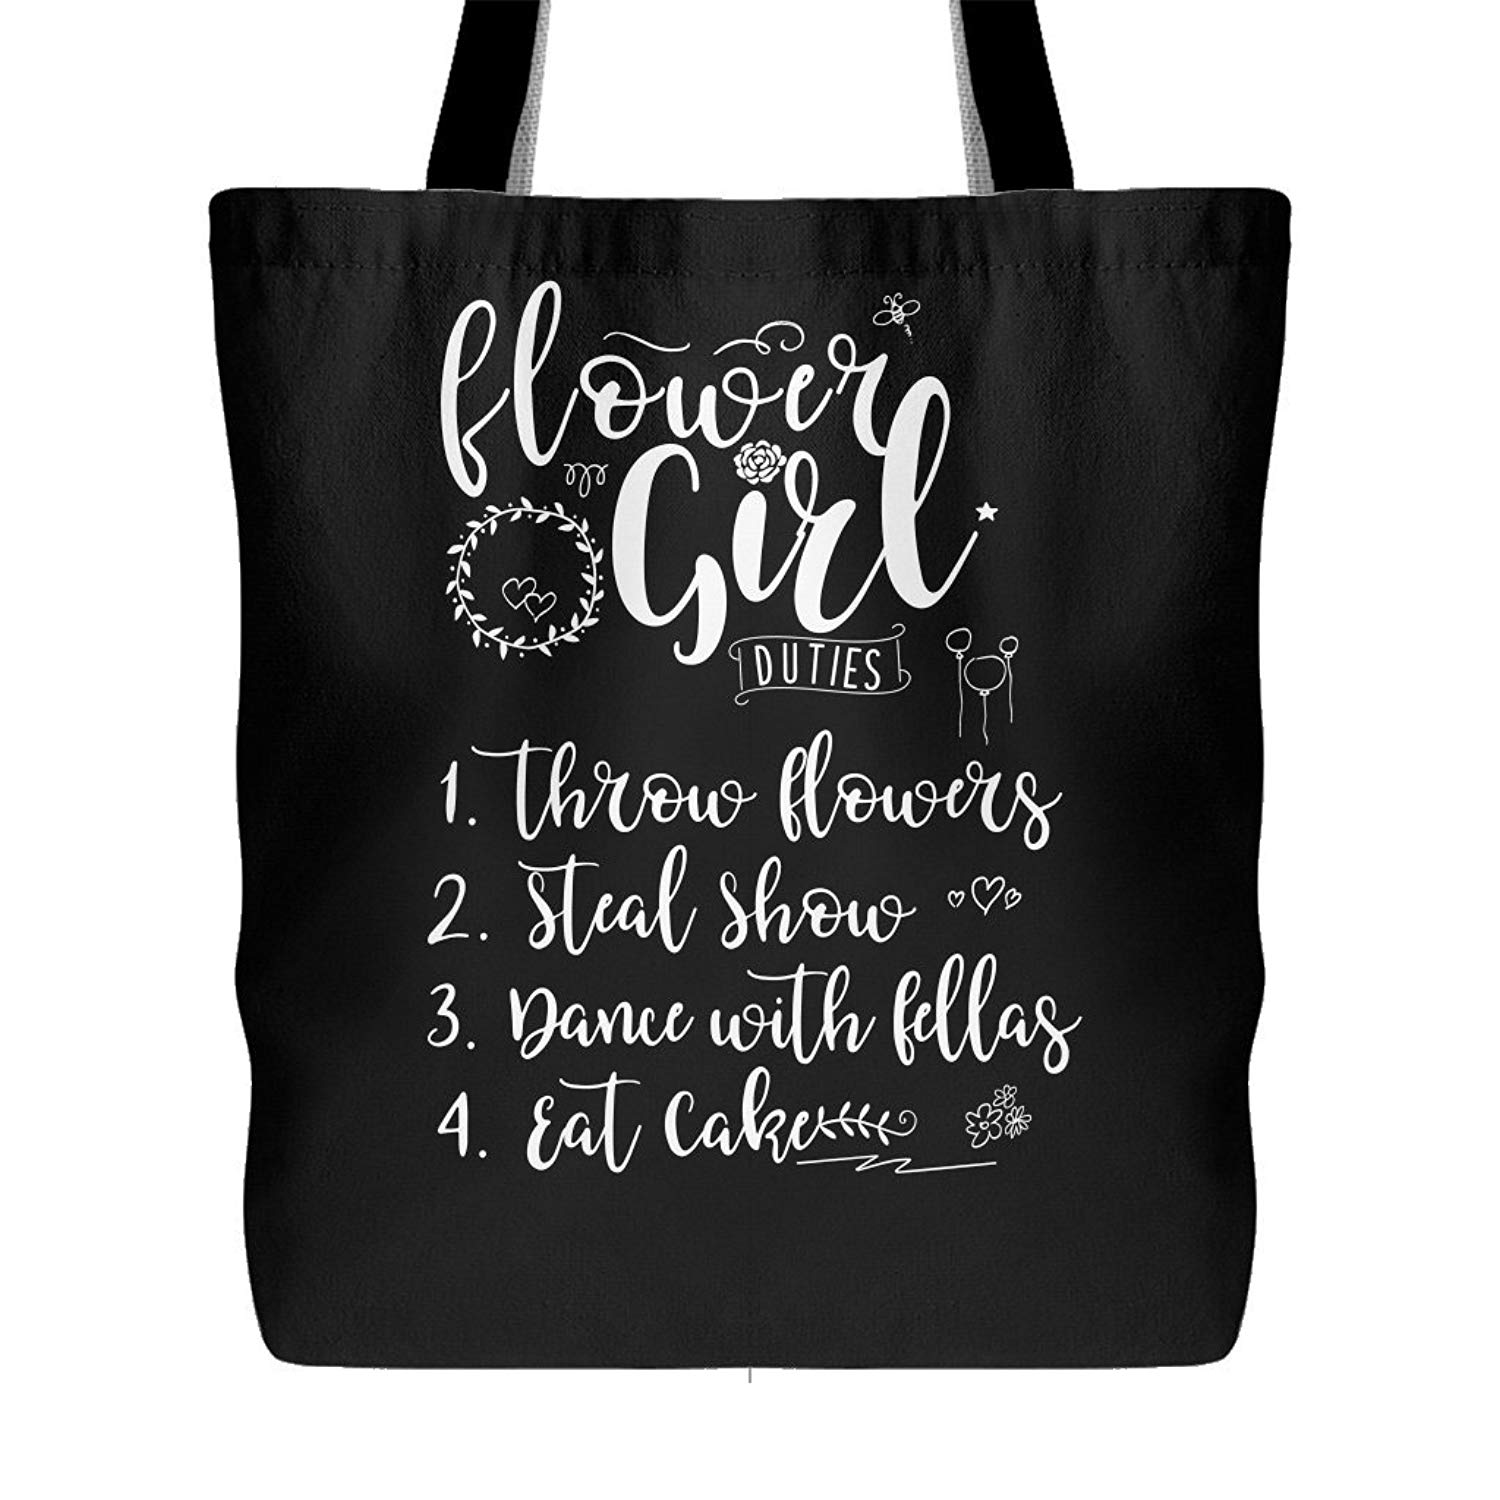 Cheap flower girl gift bag find flower girl gift bag deals on line flower girl duties canvas tote bag flower girls reception shoulder bag wedding gift for izmirmasajfo